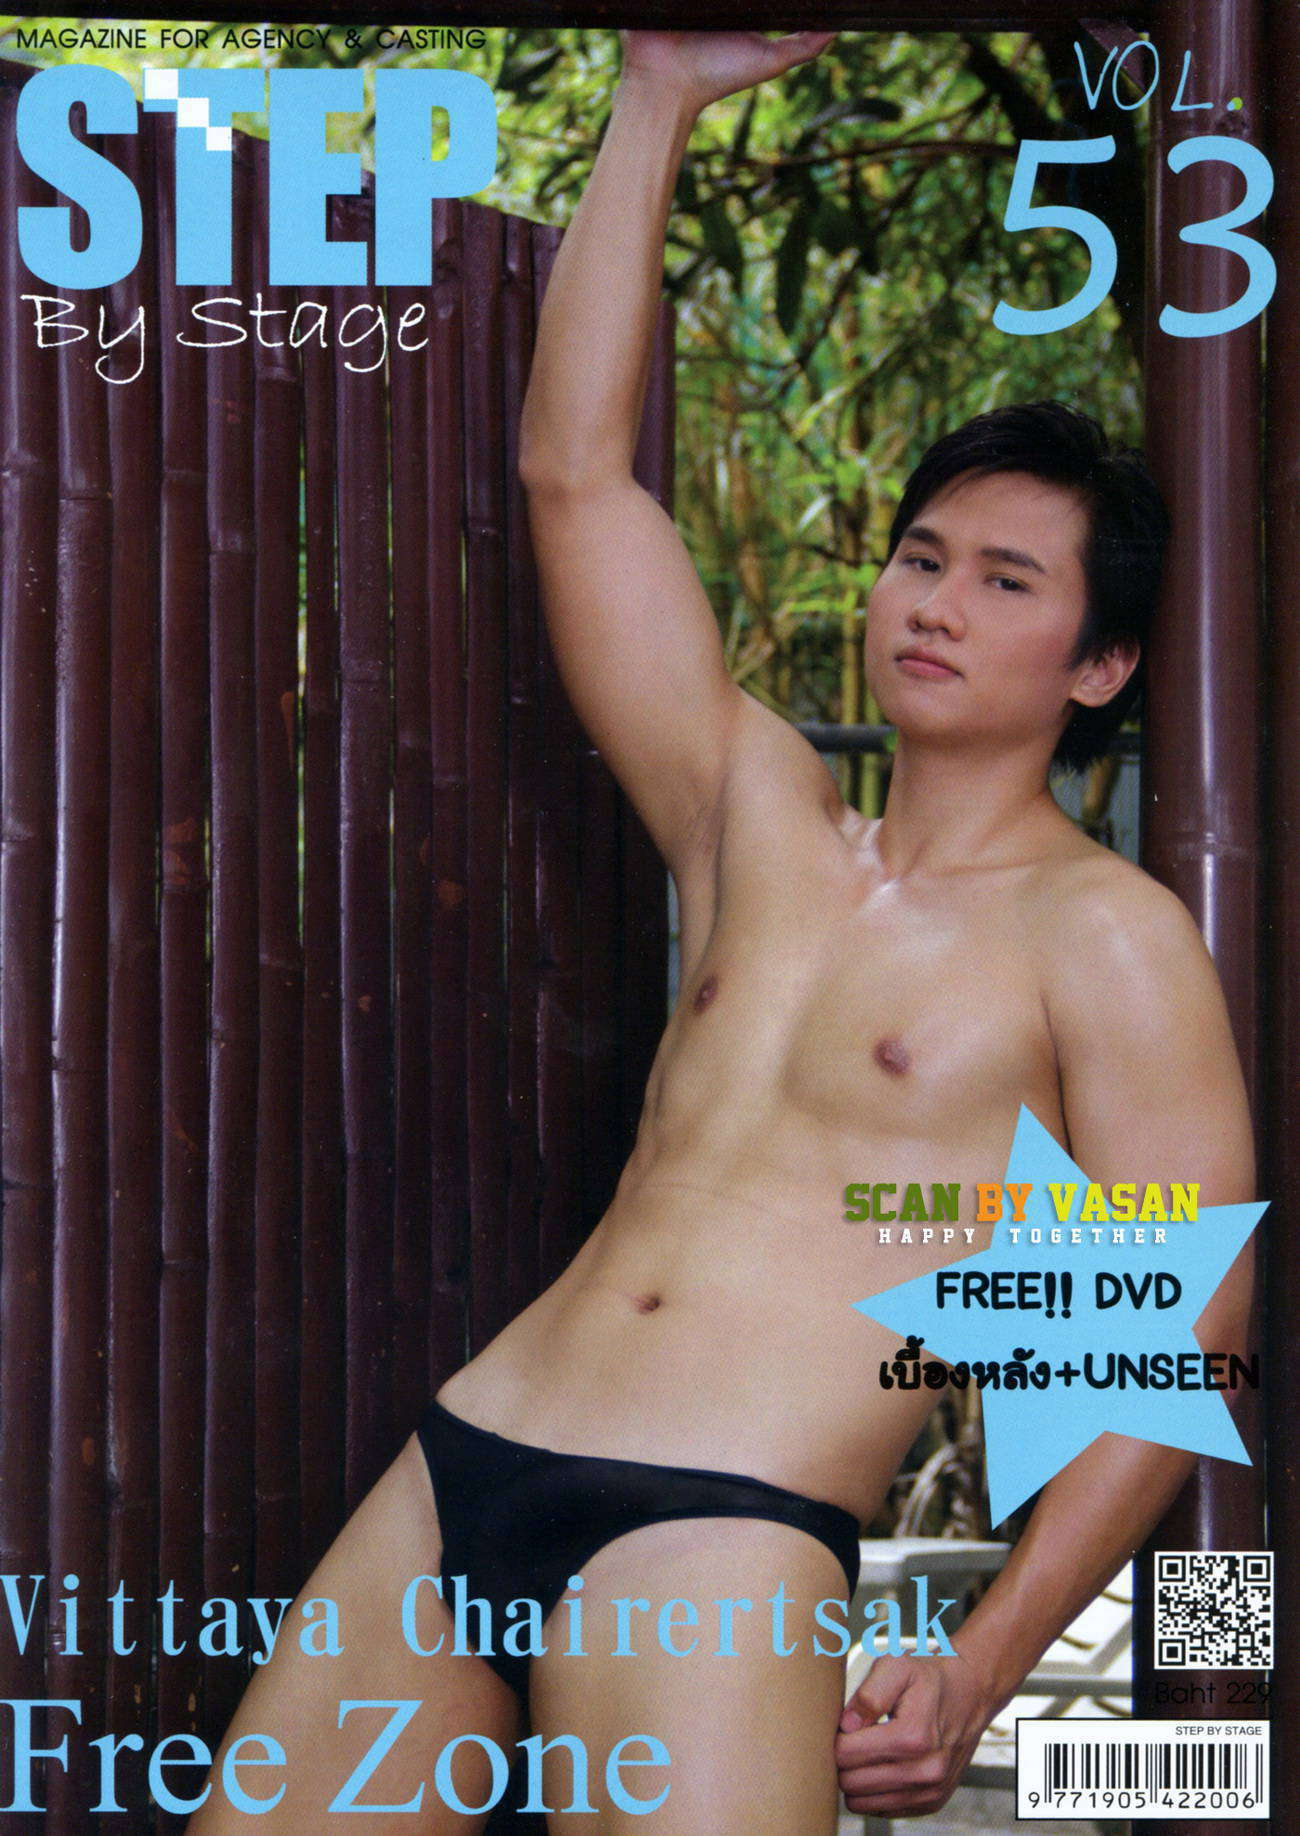 Unseen Step 53 Wittaya Chailertsak Exciting DVD